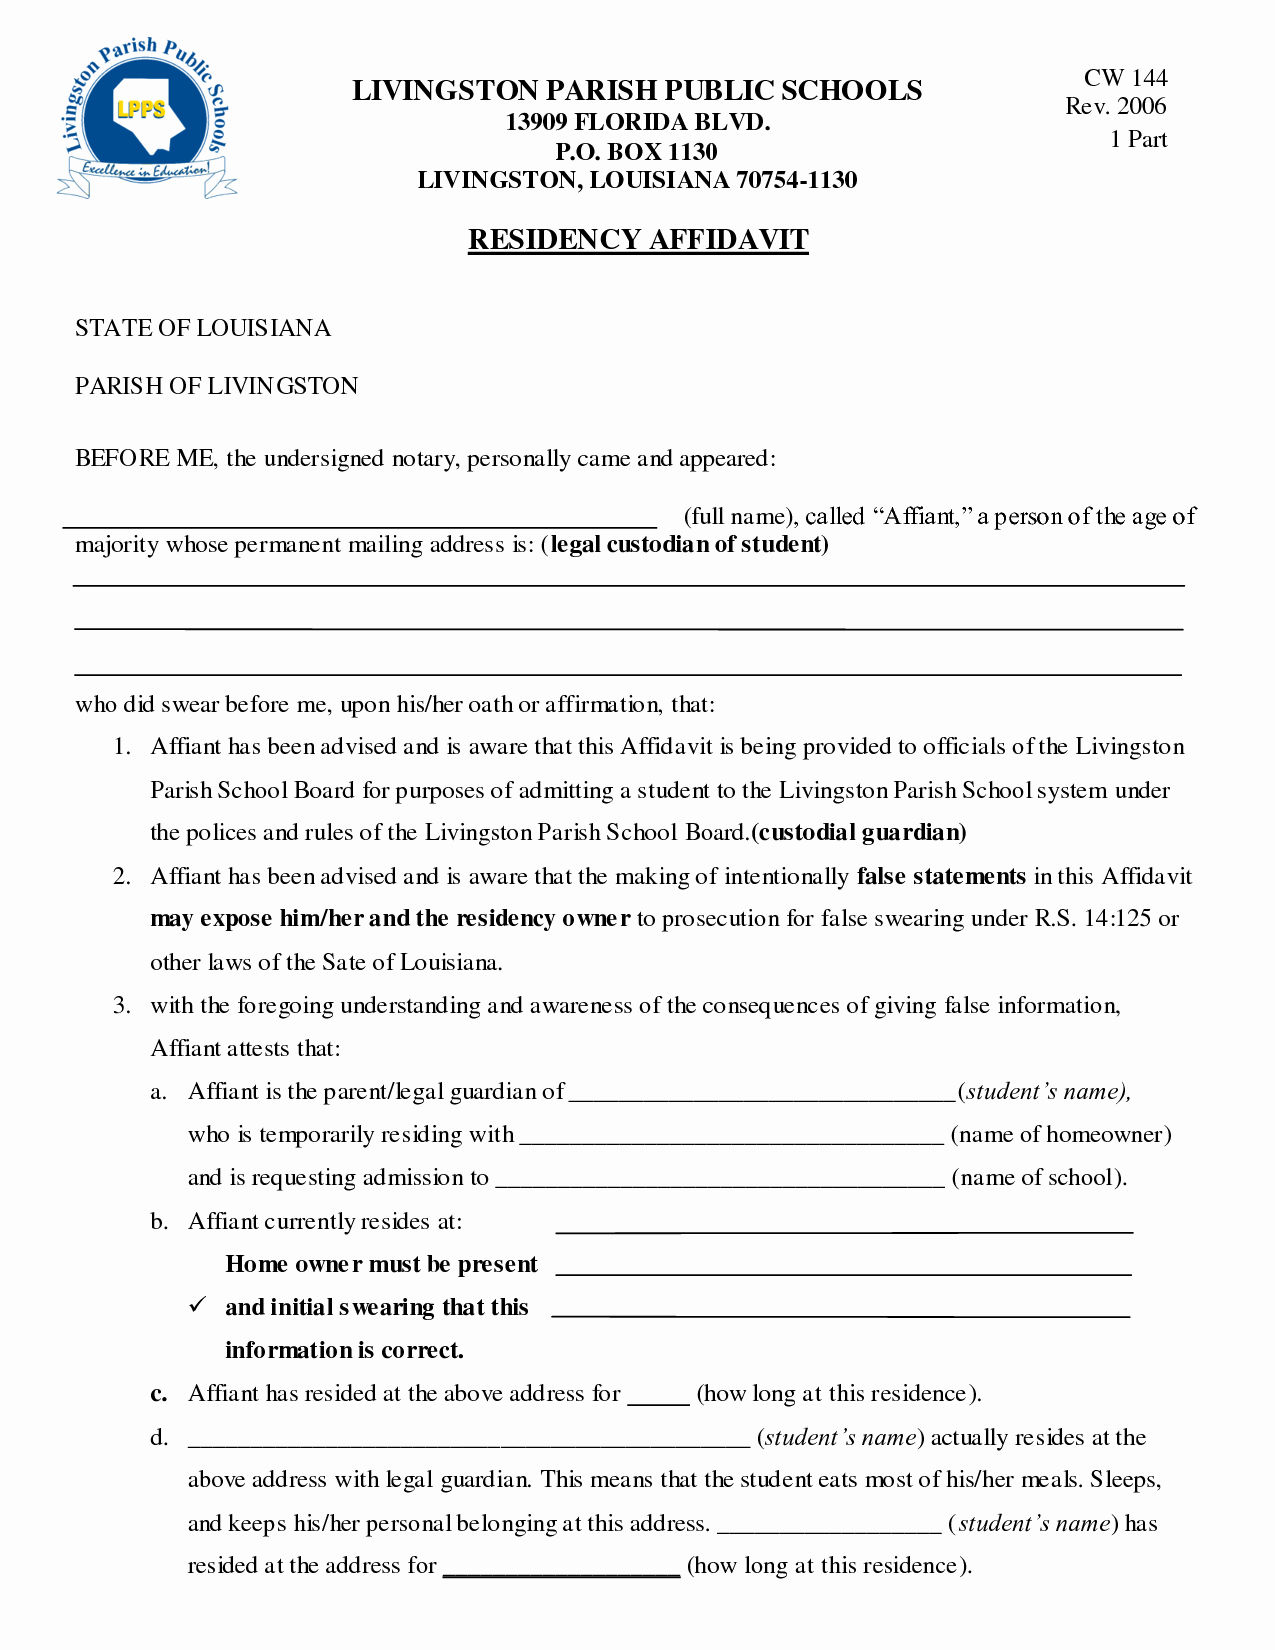 Free Printable Guardianship forms Lovely Temporary Guardianship Agreement Texas